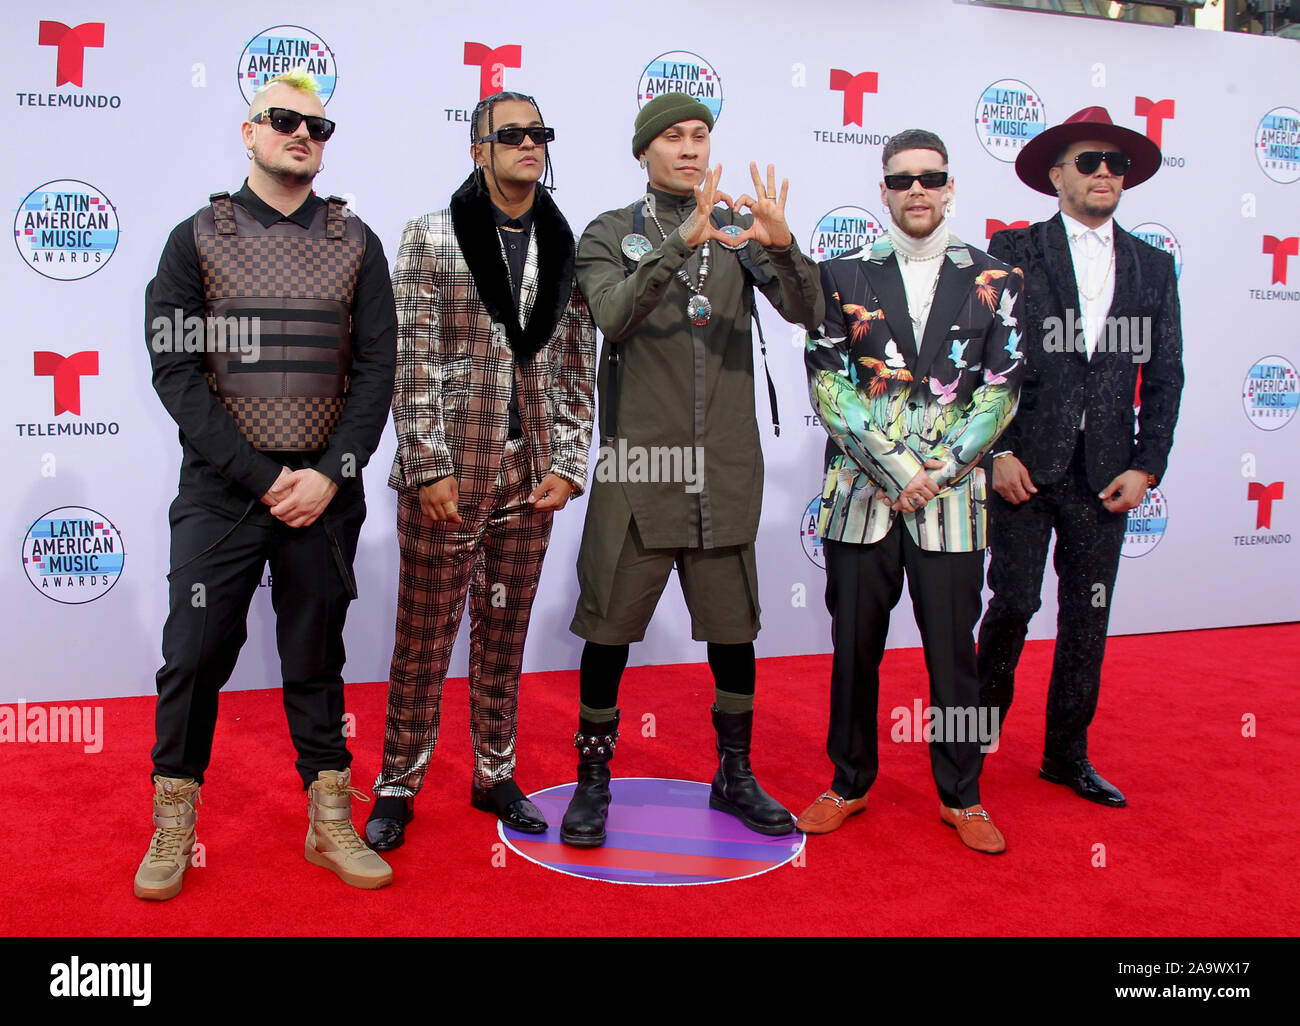 Latin American Music Awards 2019 held at the Dolby Theatre in Hollywood, California. Featuring: Taboo, Piso 21 Where: Los Angeles, California, United States When: 17 Oct 2019 Credit: Adriana M. Barraza/WENN.com Stock Photo